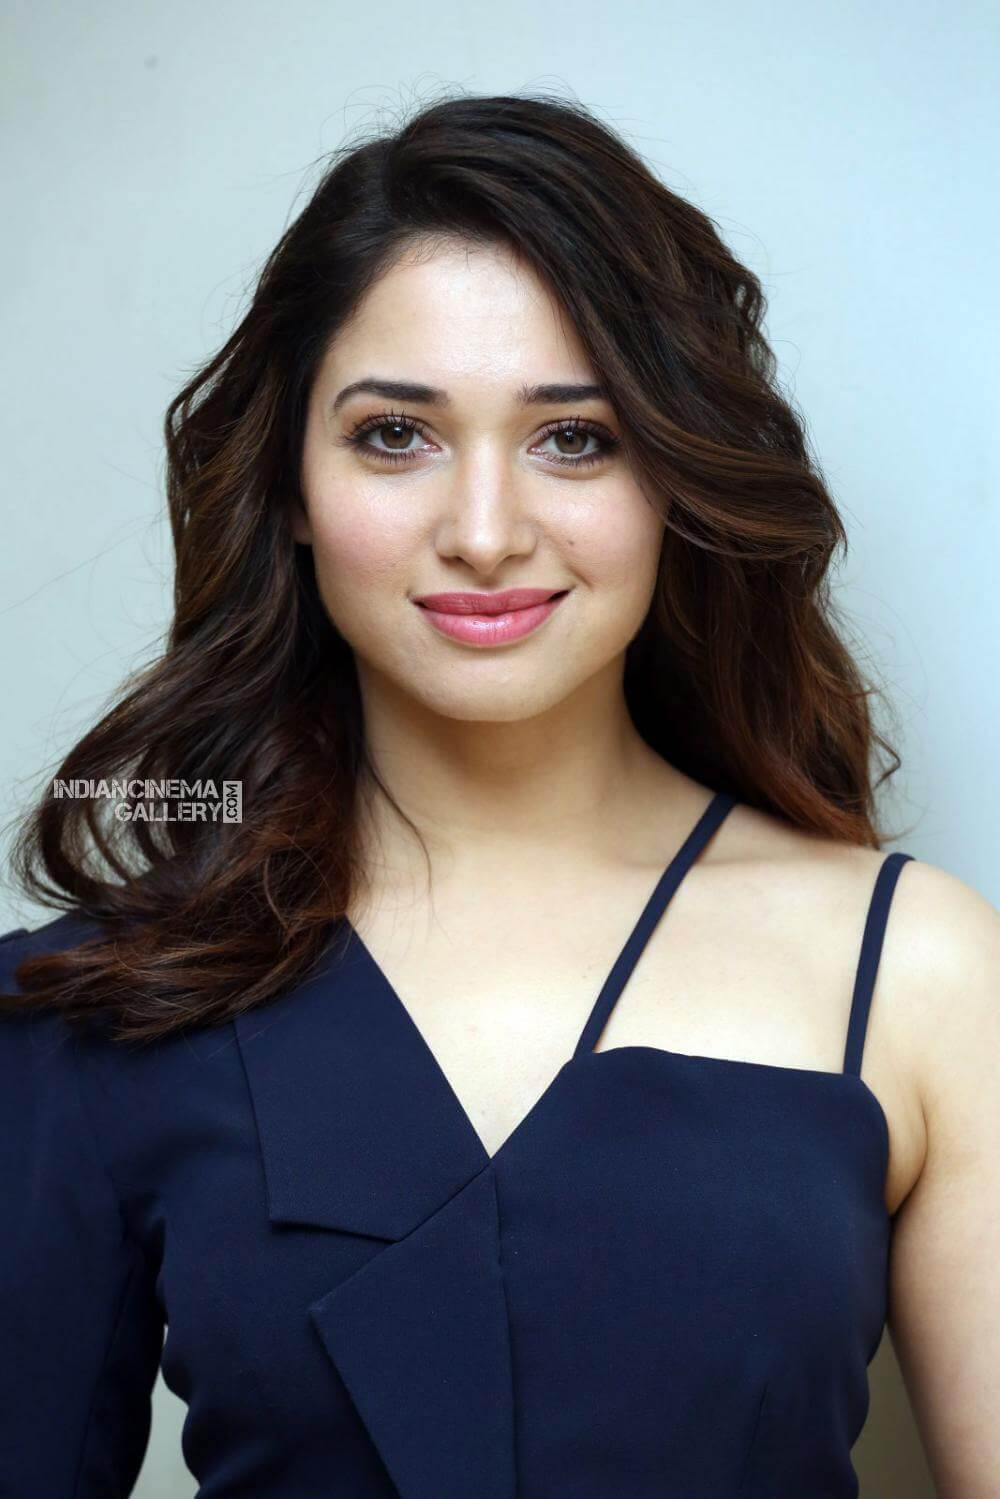 Tamannaah Bhatia Photos(images), Height, Biography, Movies, Date Of Birth, House, Details, Marriage, Boyfriend, Net Worth, Education, Instagram, Facebook, Twitter, Wiki, Imdb, Youtube (83)